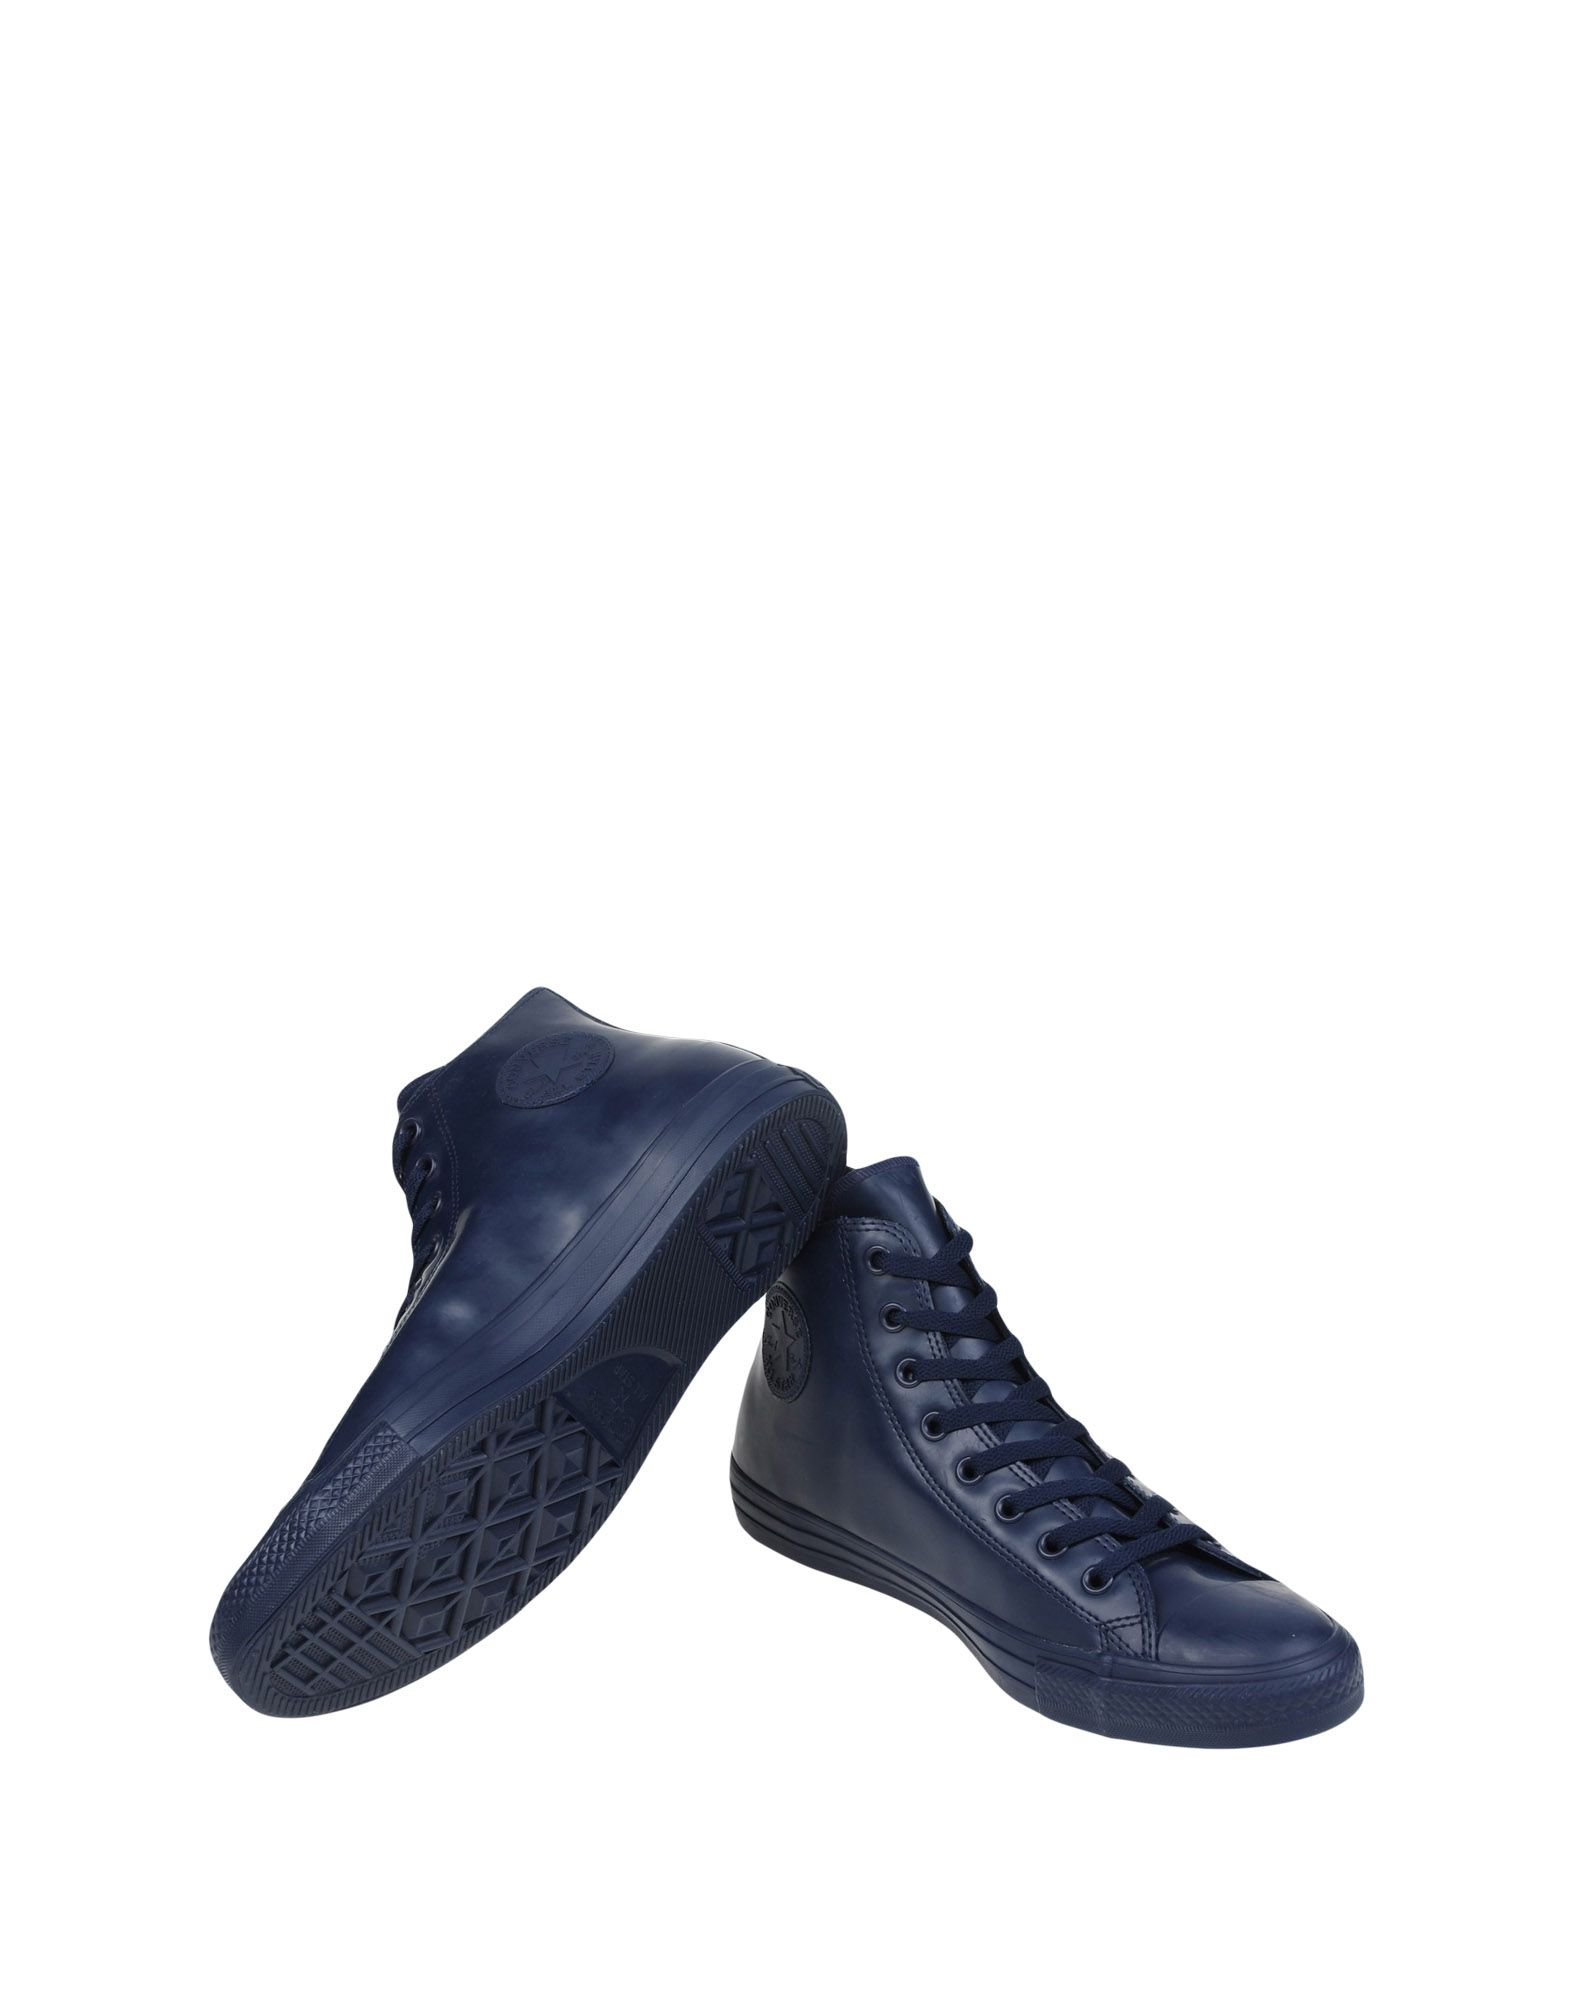 Sneakers Converse All Star All Star Hi Rubber - Homme - Sneakers Converse All Star sur